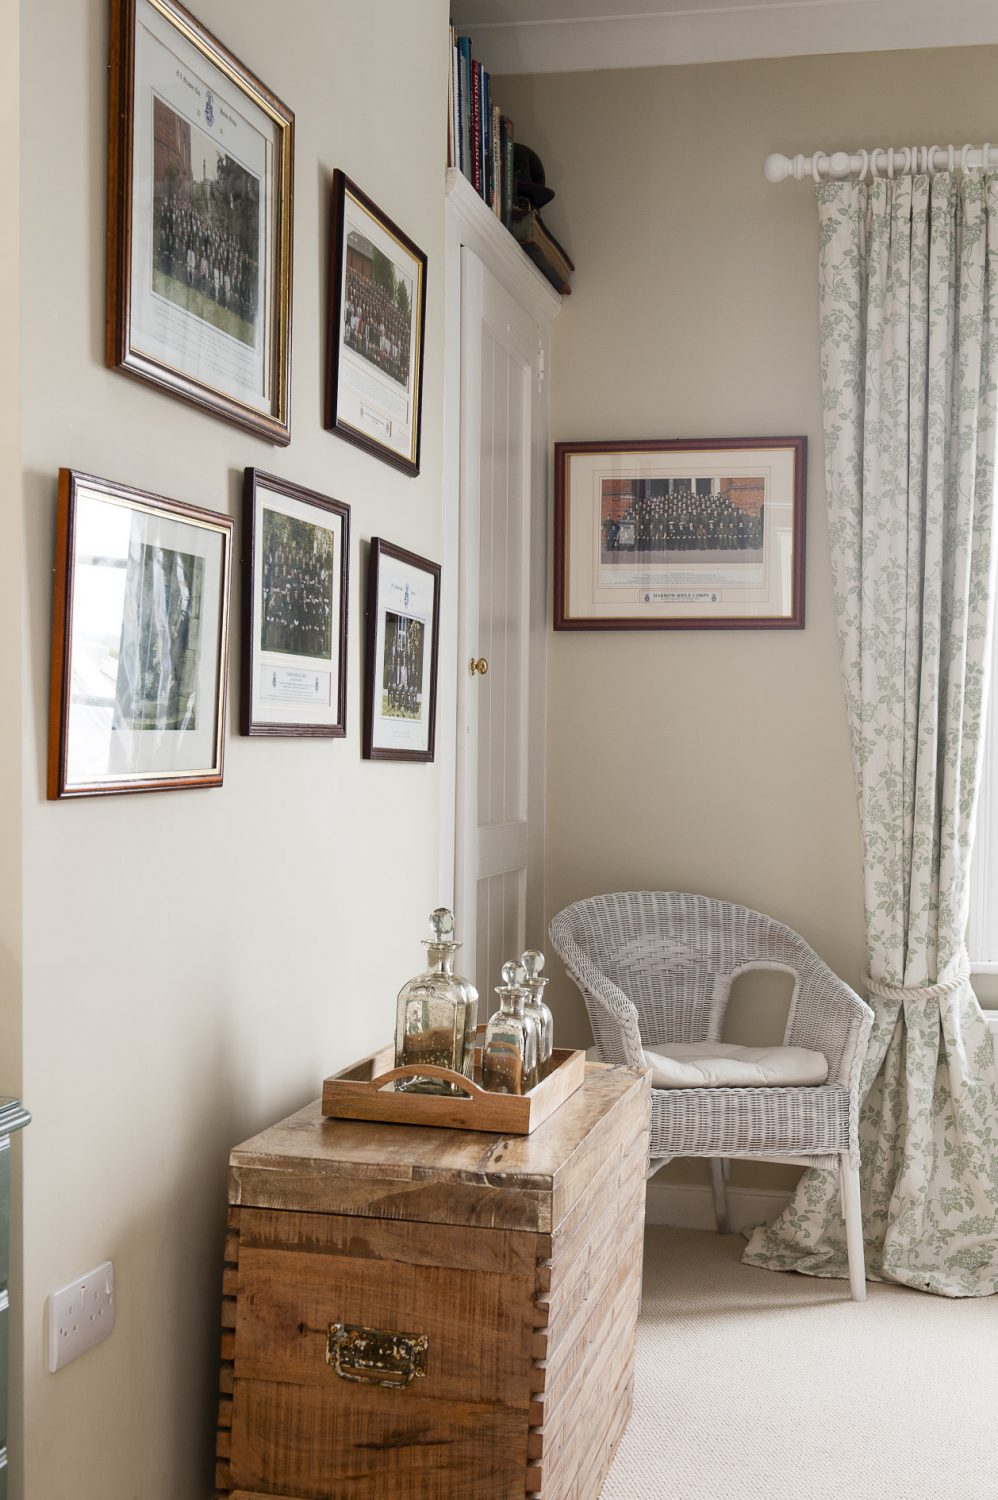 Pictures hang on the wall above a wooden chest